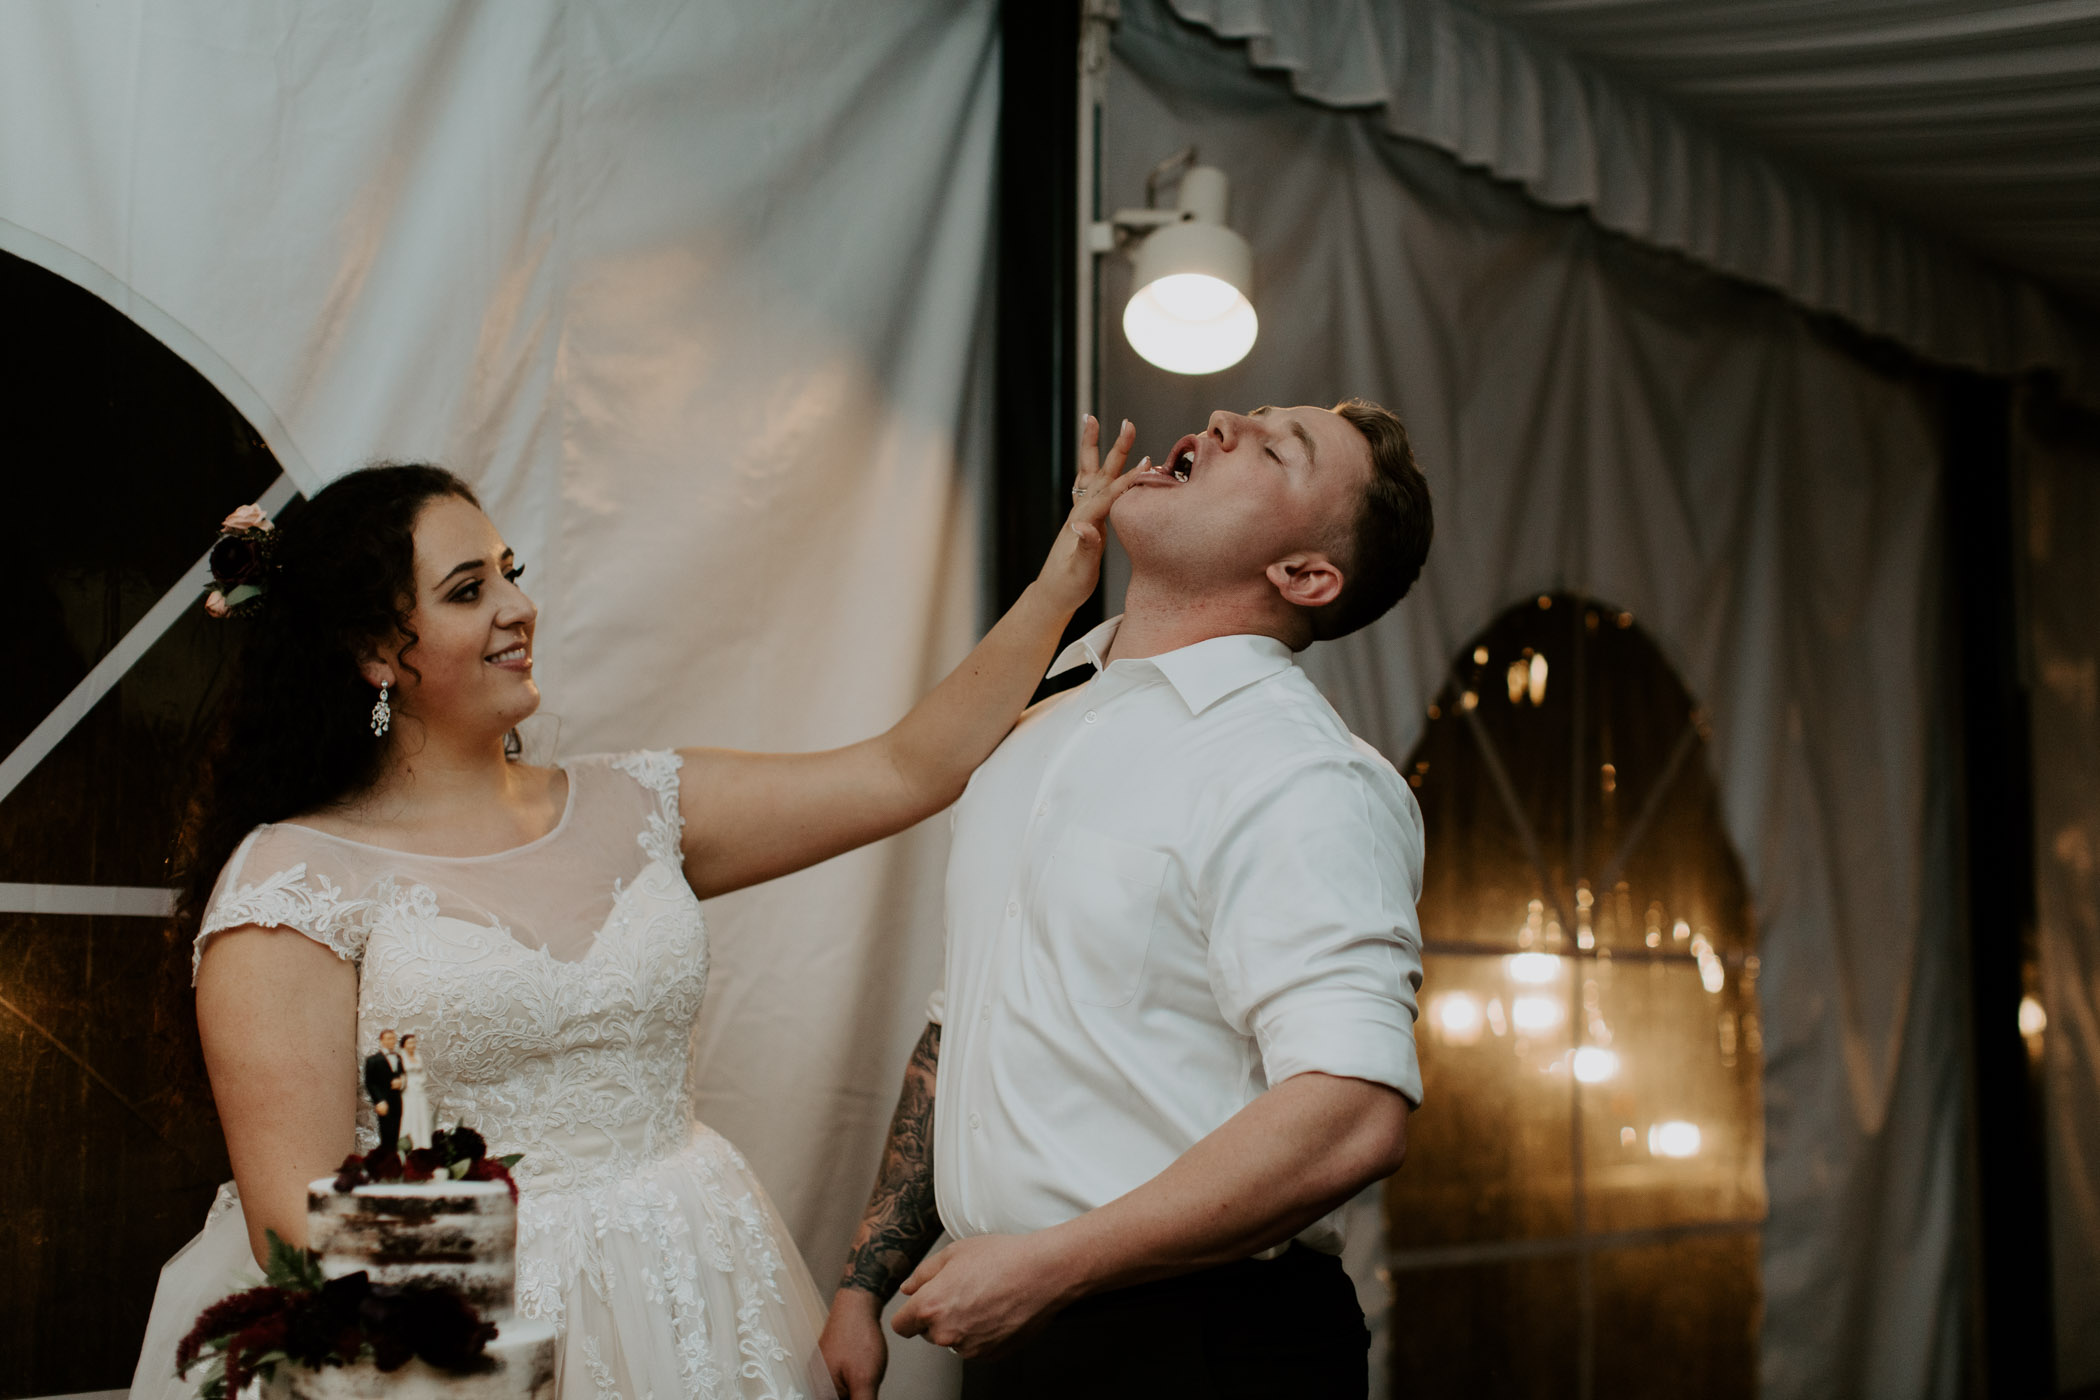 Bride playfully shoving cake in grooms mouth on their wedding day